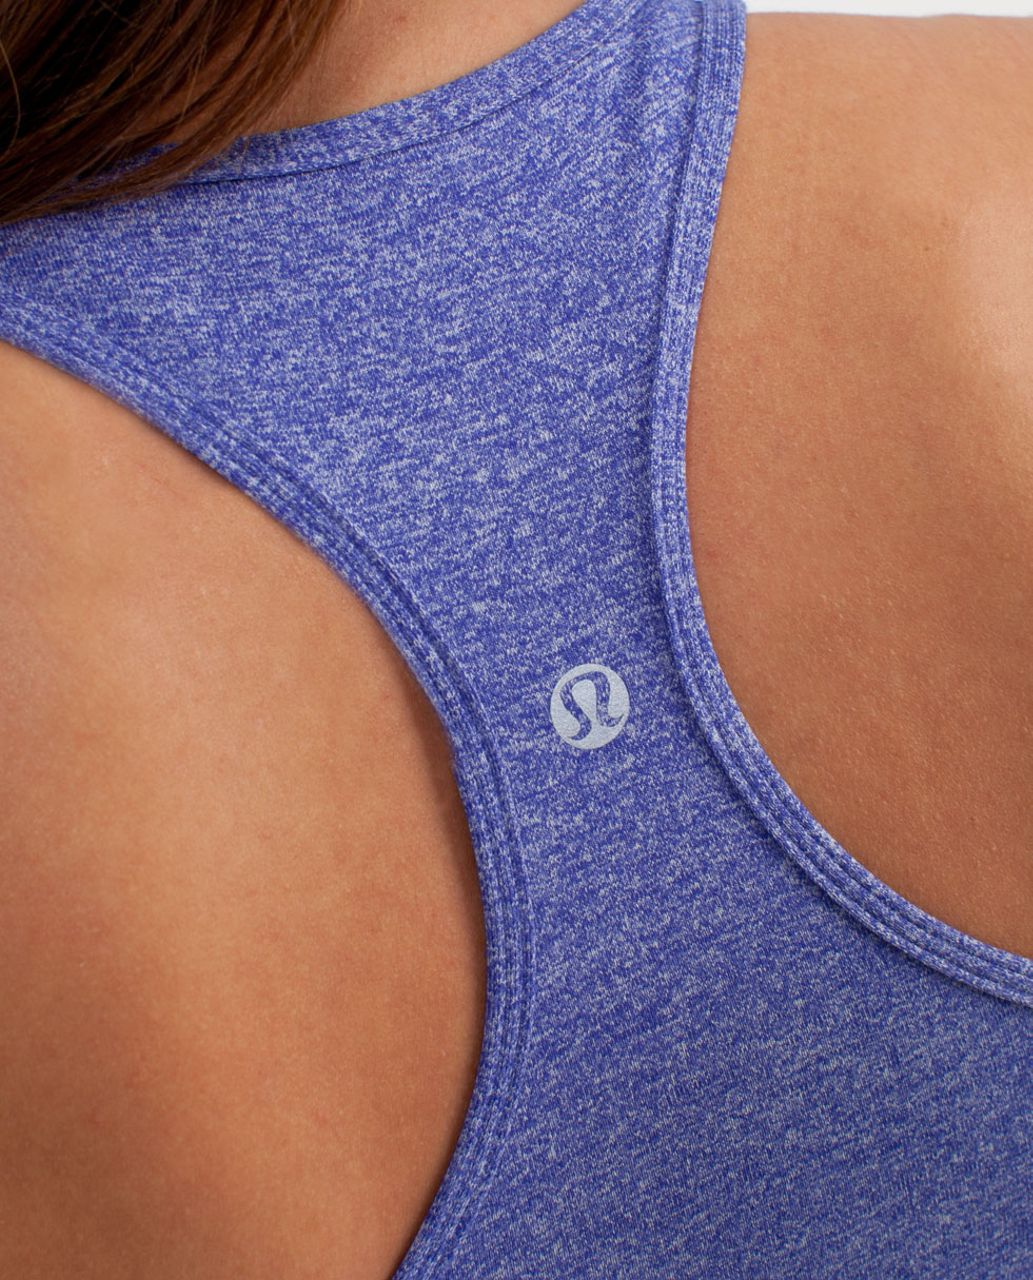 Lululemon Cool Racerback - Heathered Pigment Blue